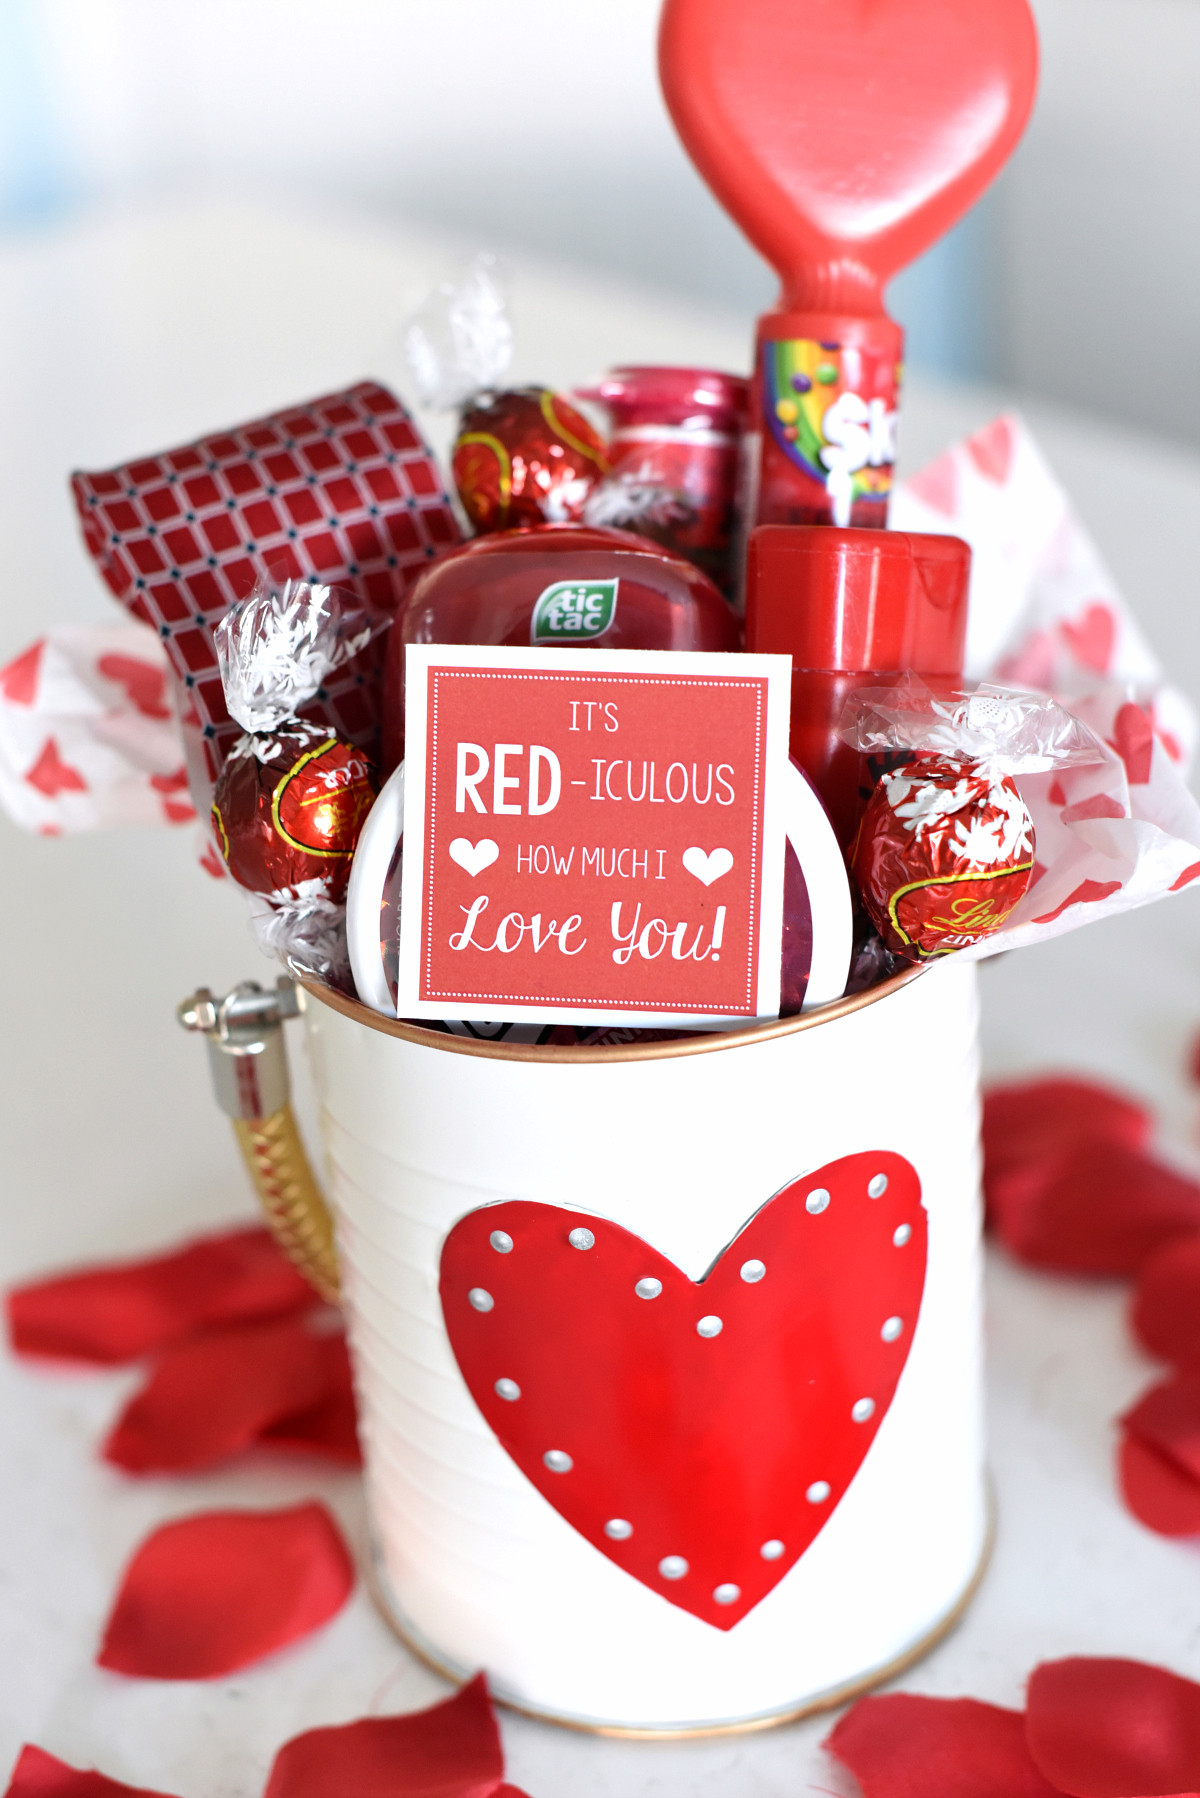 Best ideas about Valentines Gift Ideas For Husbands . Save or Pin Cute Valentine s Day Gift Idea RED iculous Basket Now.